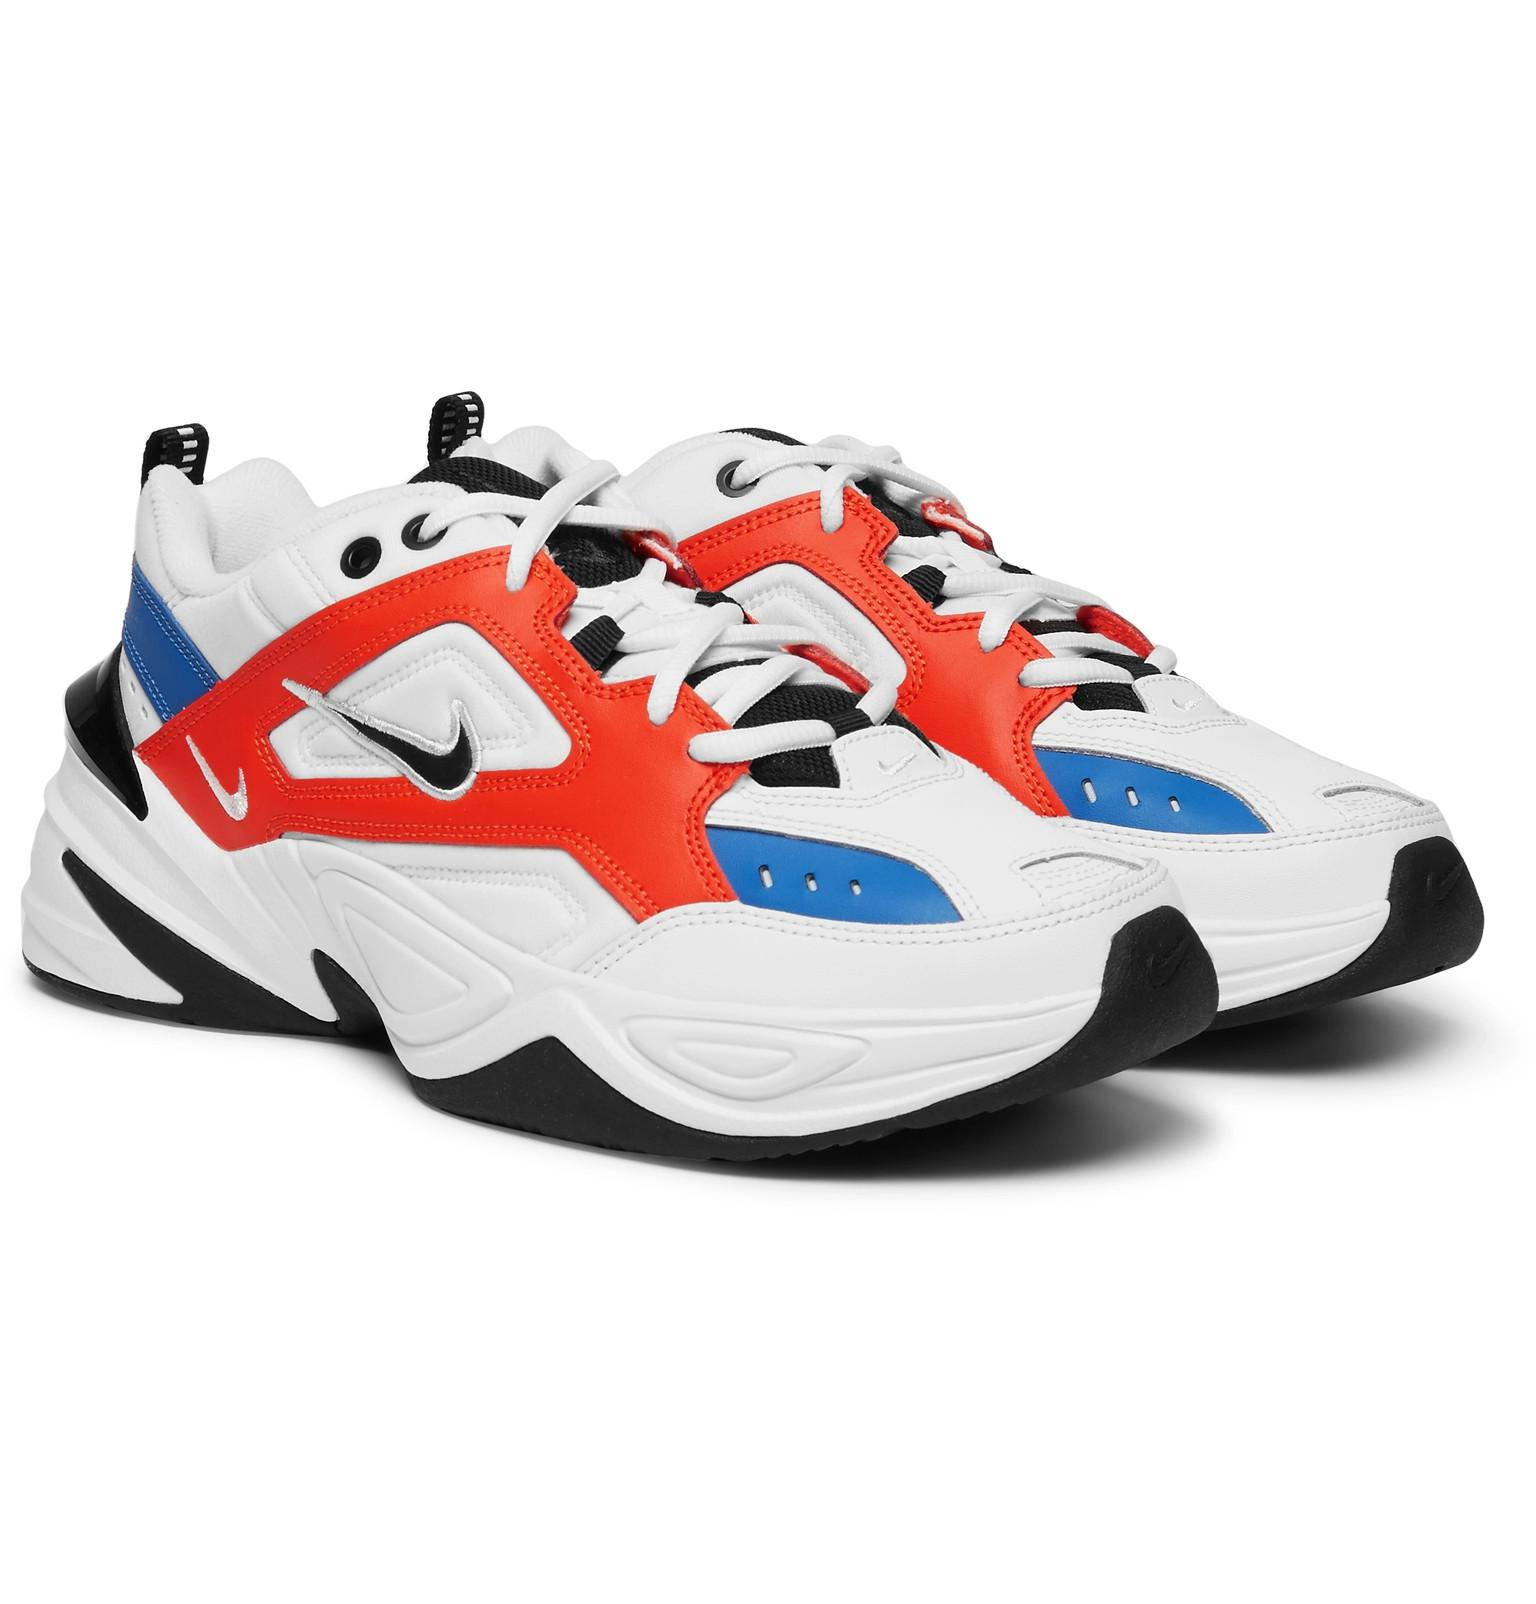 meet 09e26 783cf Nike M2k Tekno Leather, Nylon And Mesh Sneakers in White for